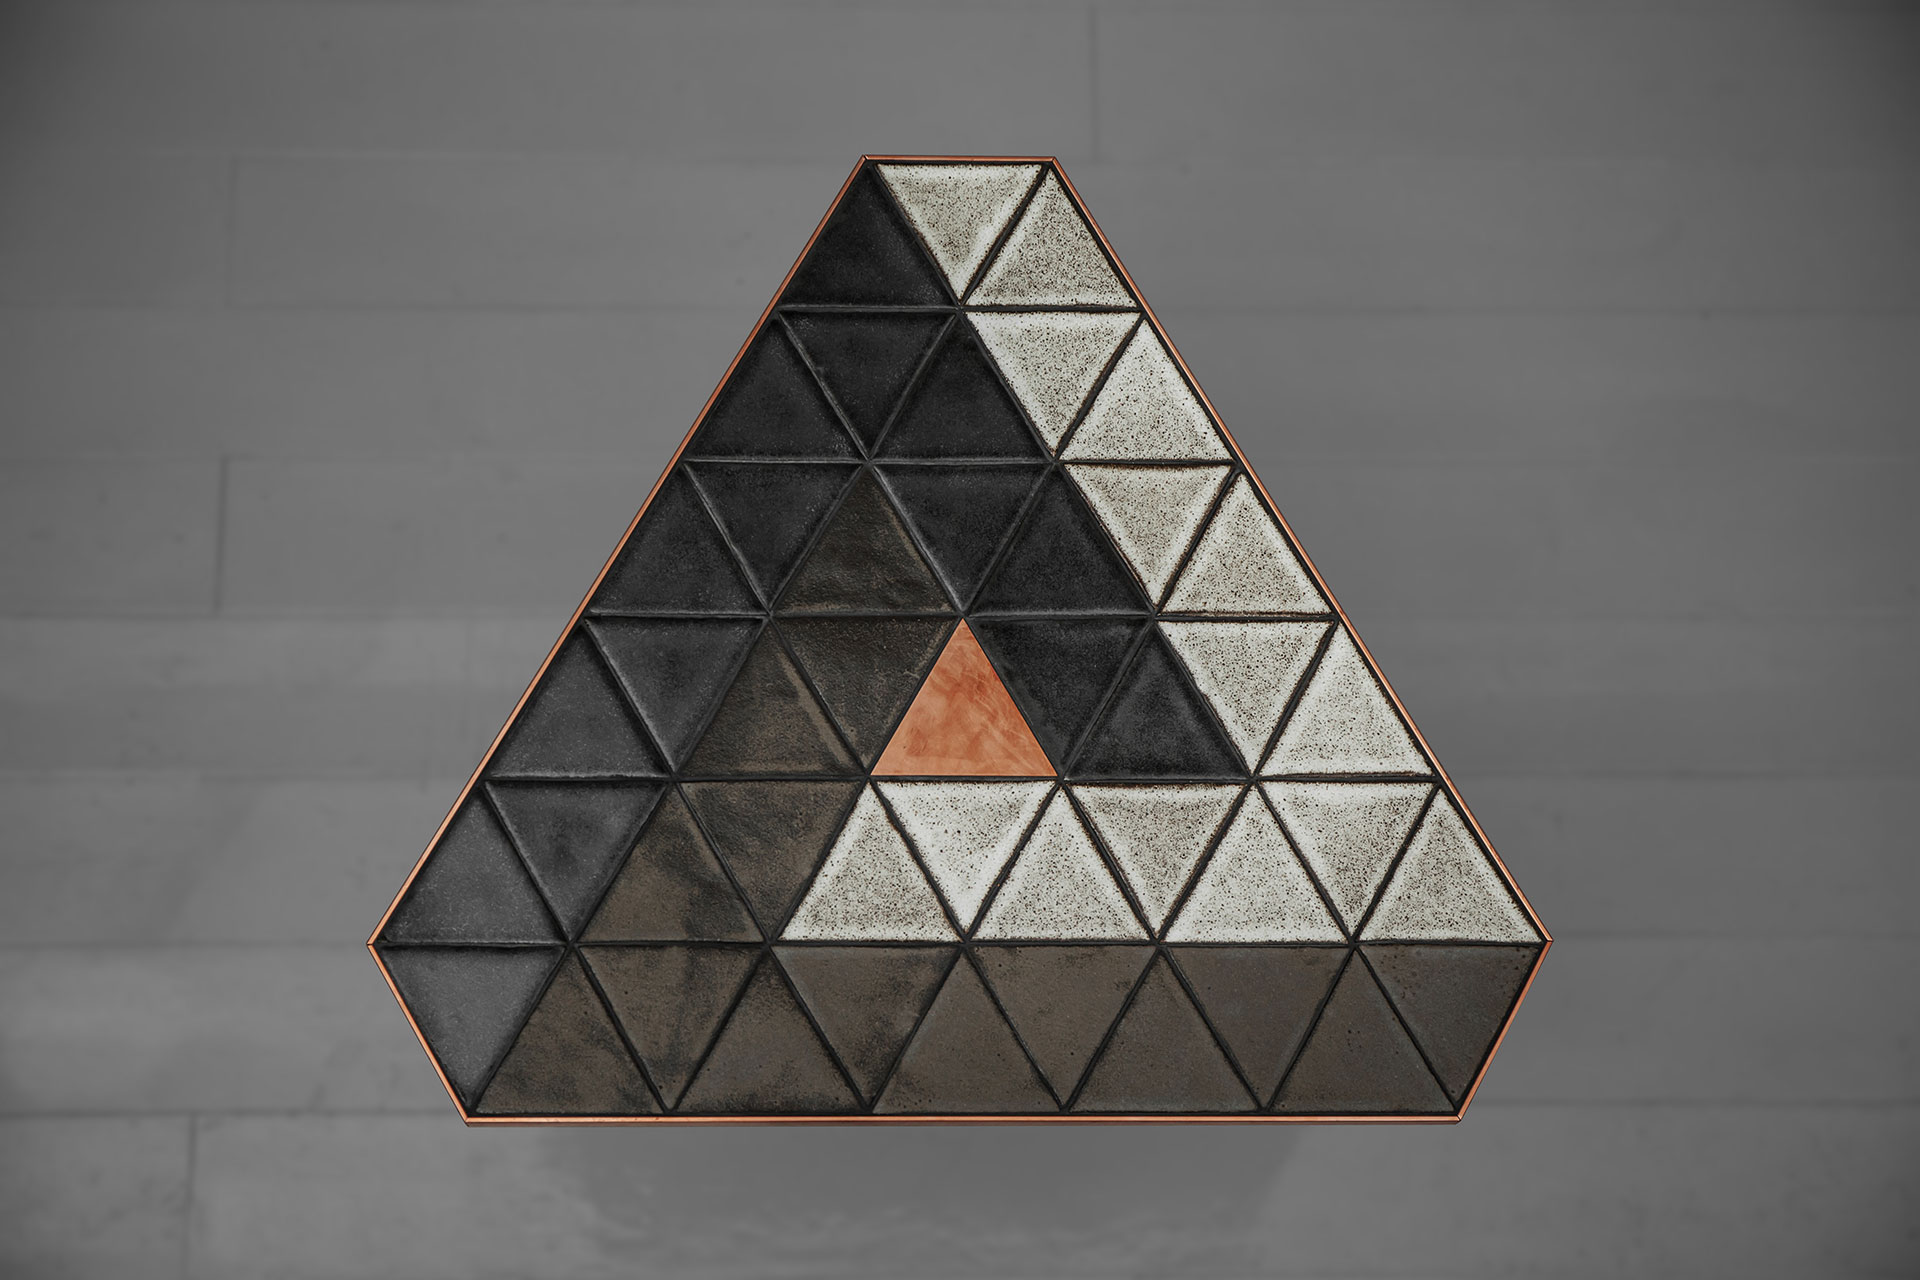 Ceramic side table inspired by Penrose triangle